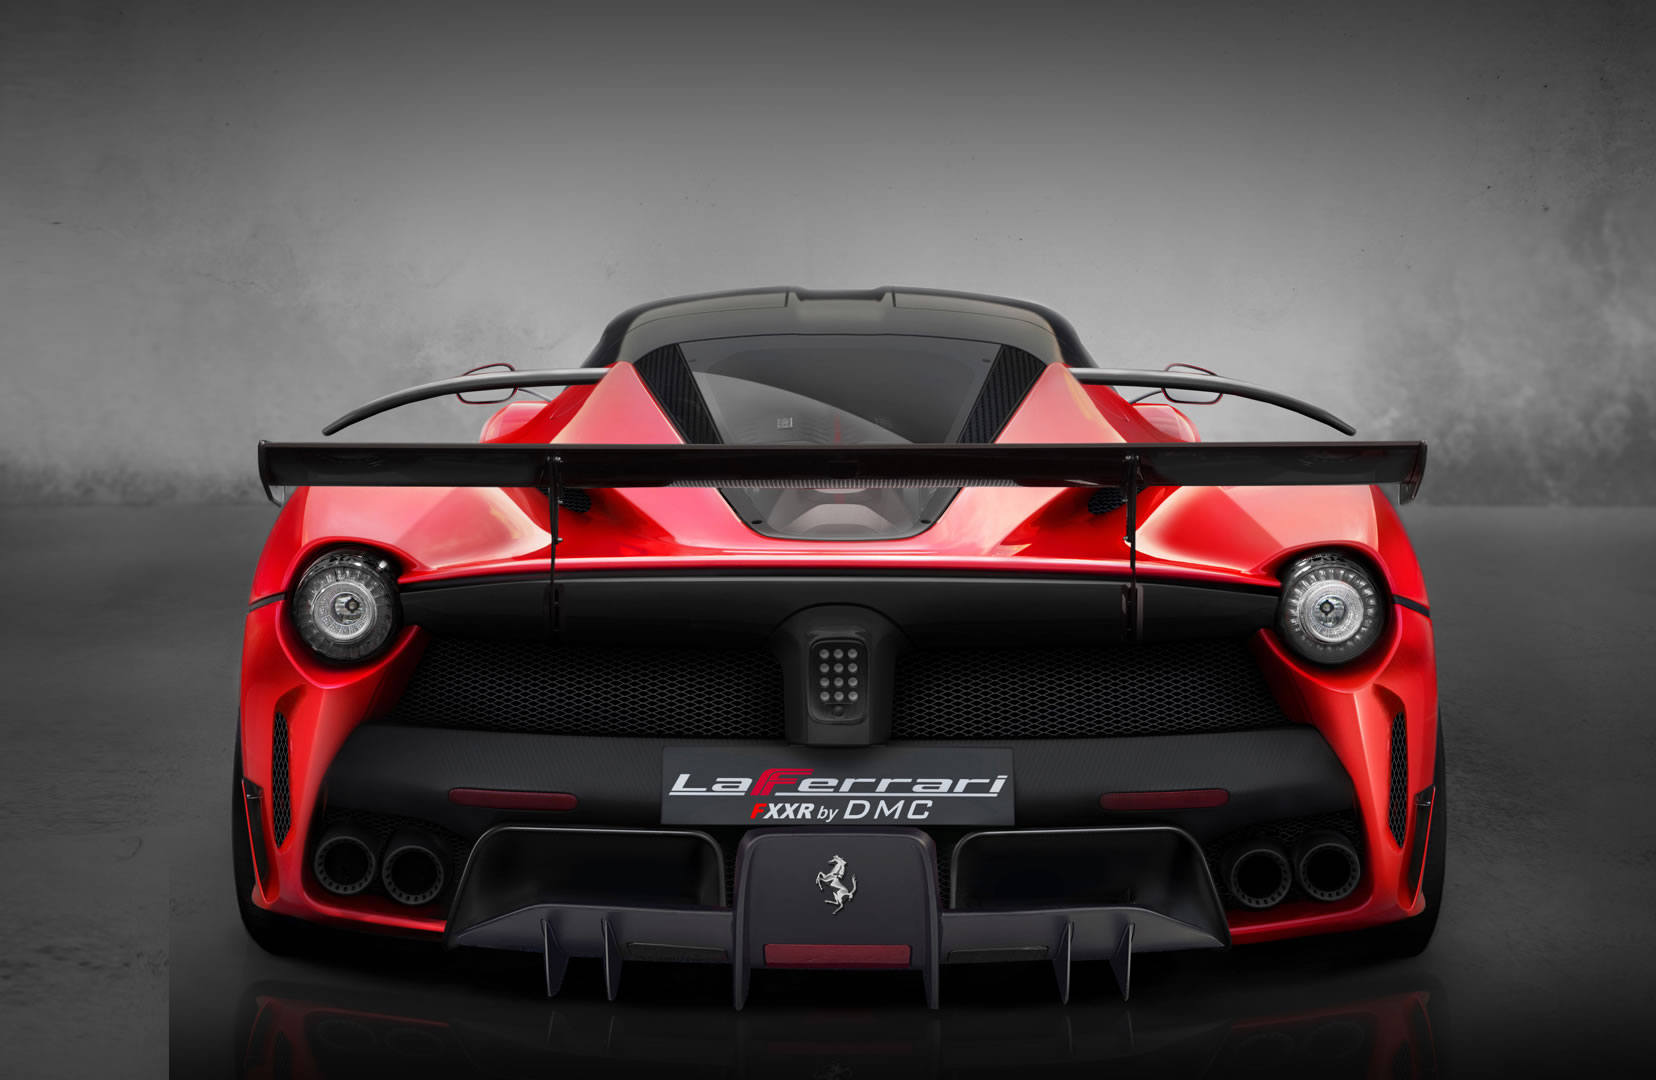 2013 Ferrari Laferrari Fxxr By Dmc Rear Photo Rosso